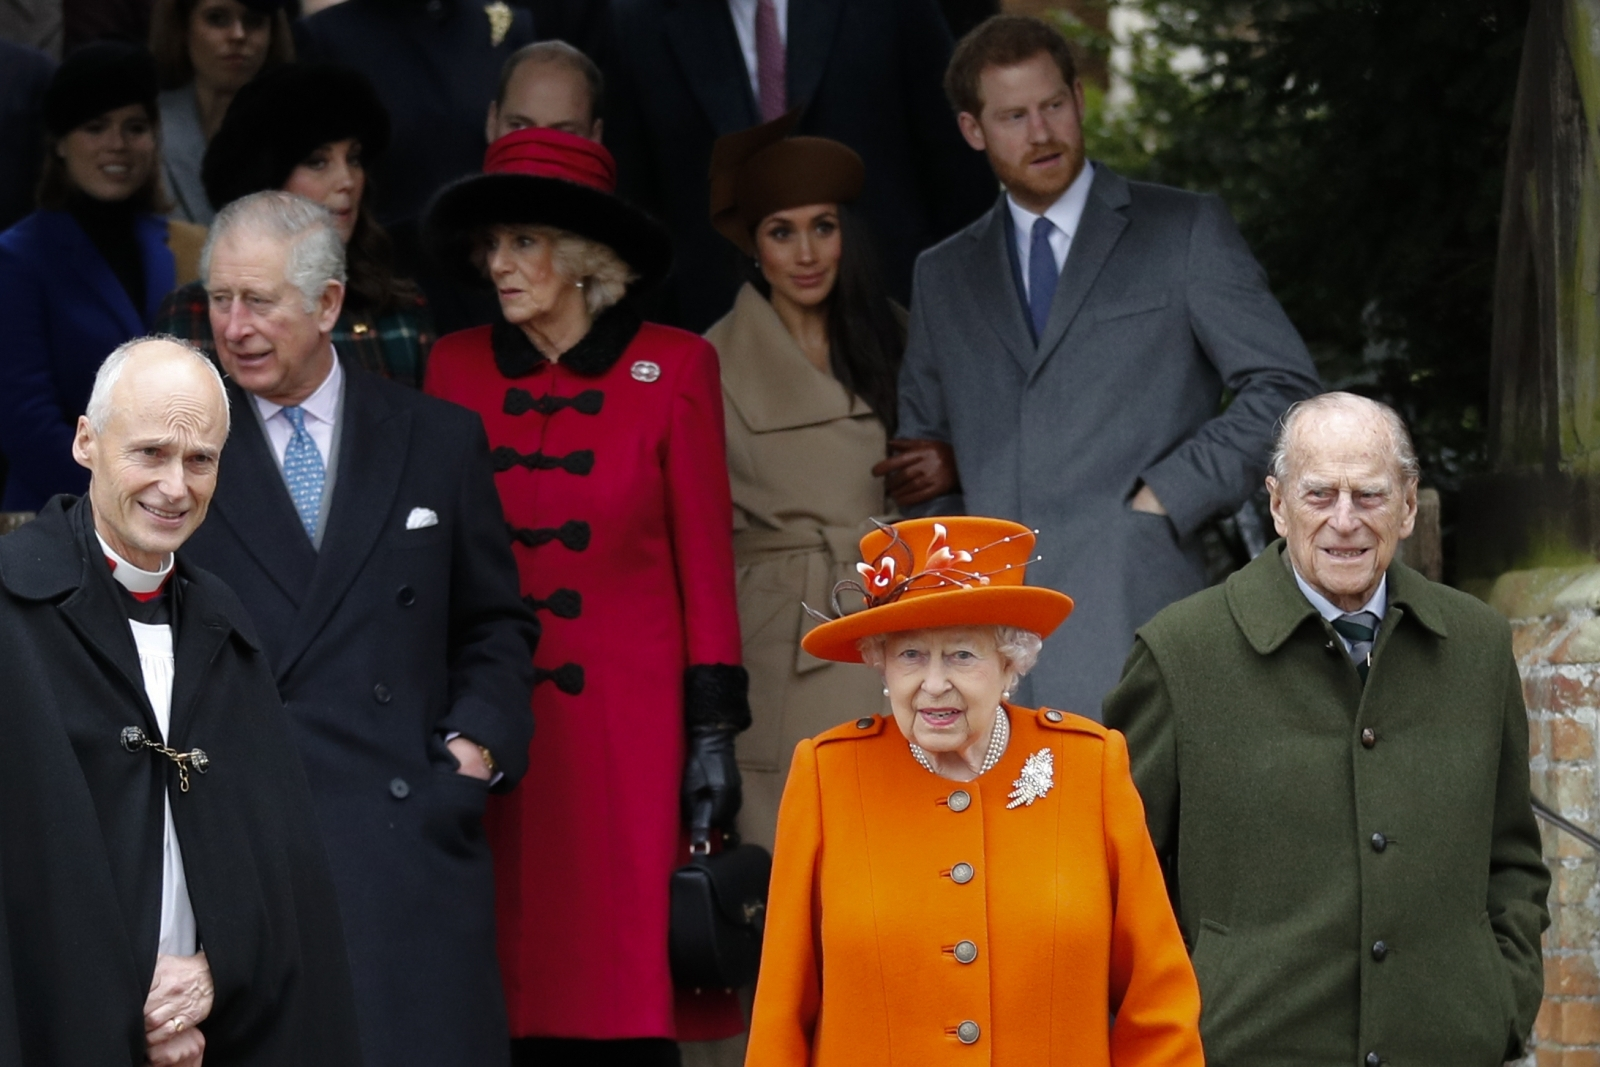 Prince Charles recovers from COVID-19 after self-isolating at his Birkhall home